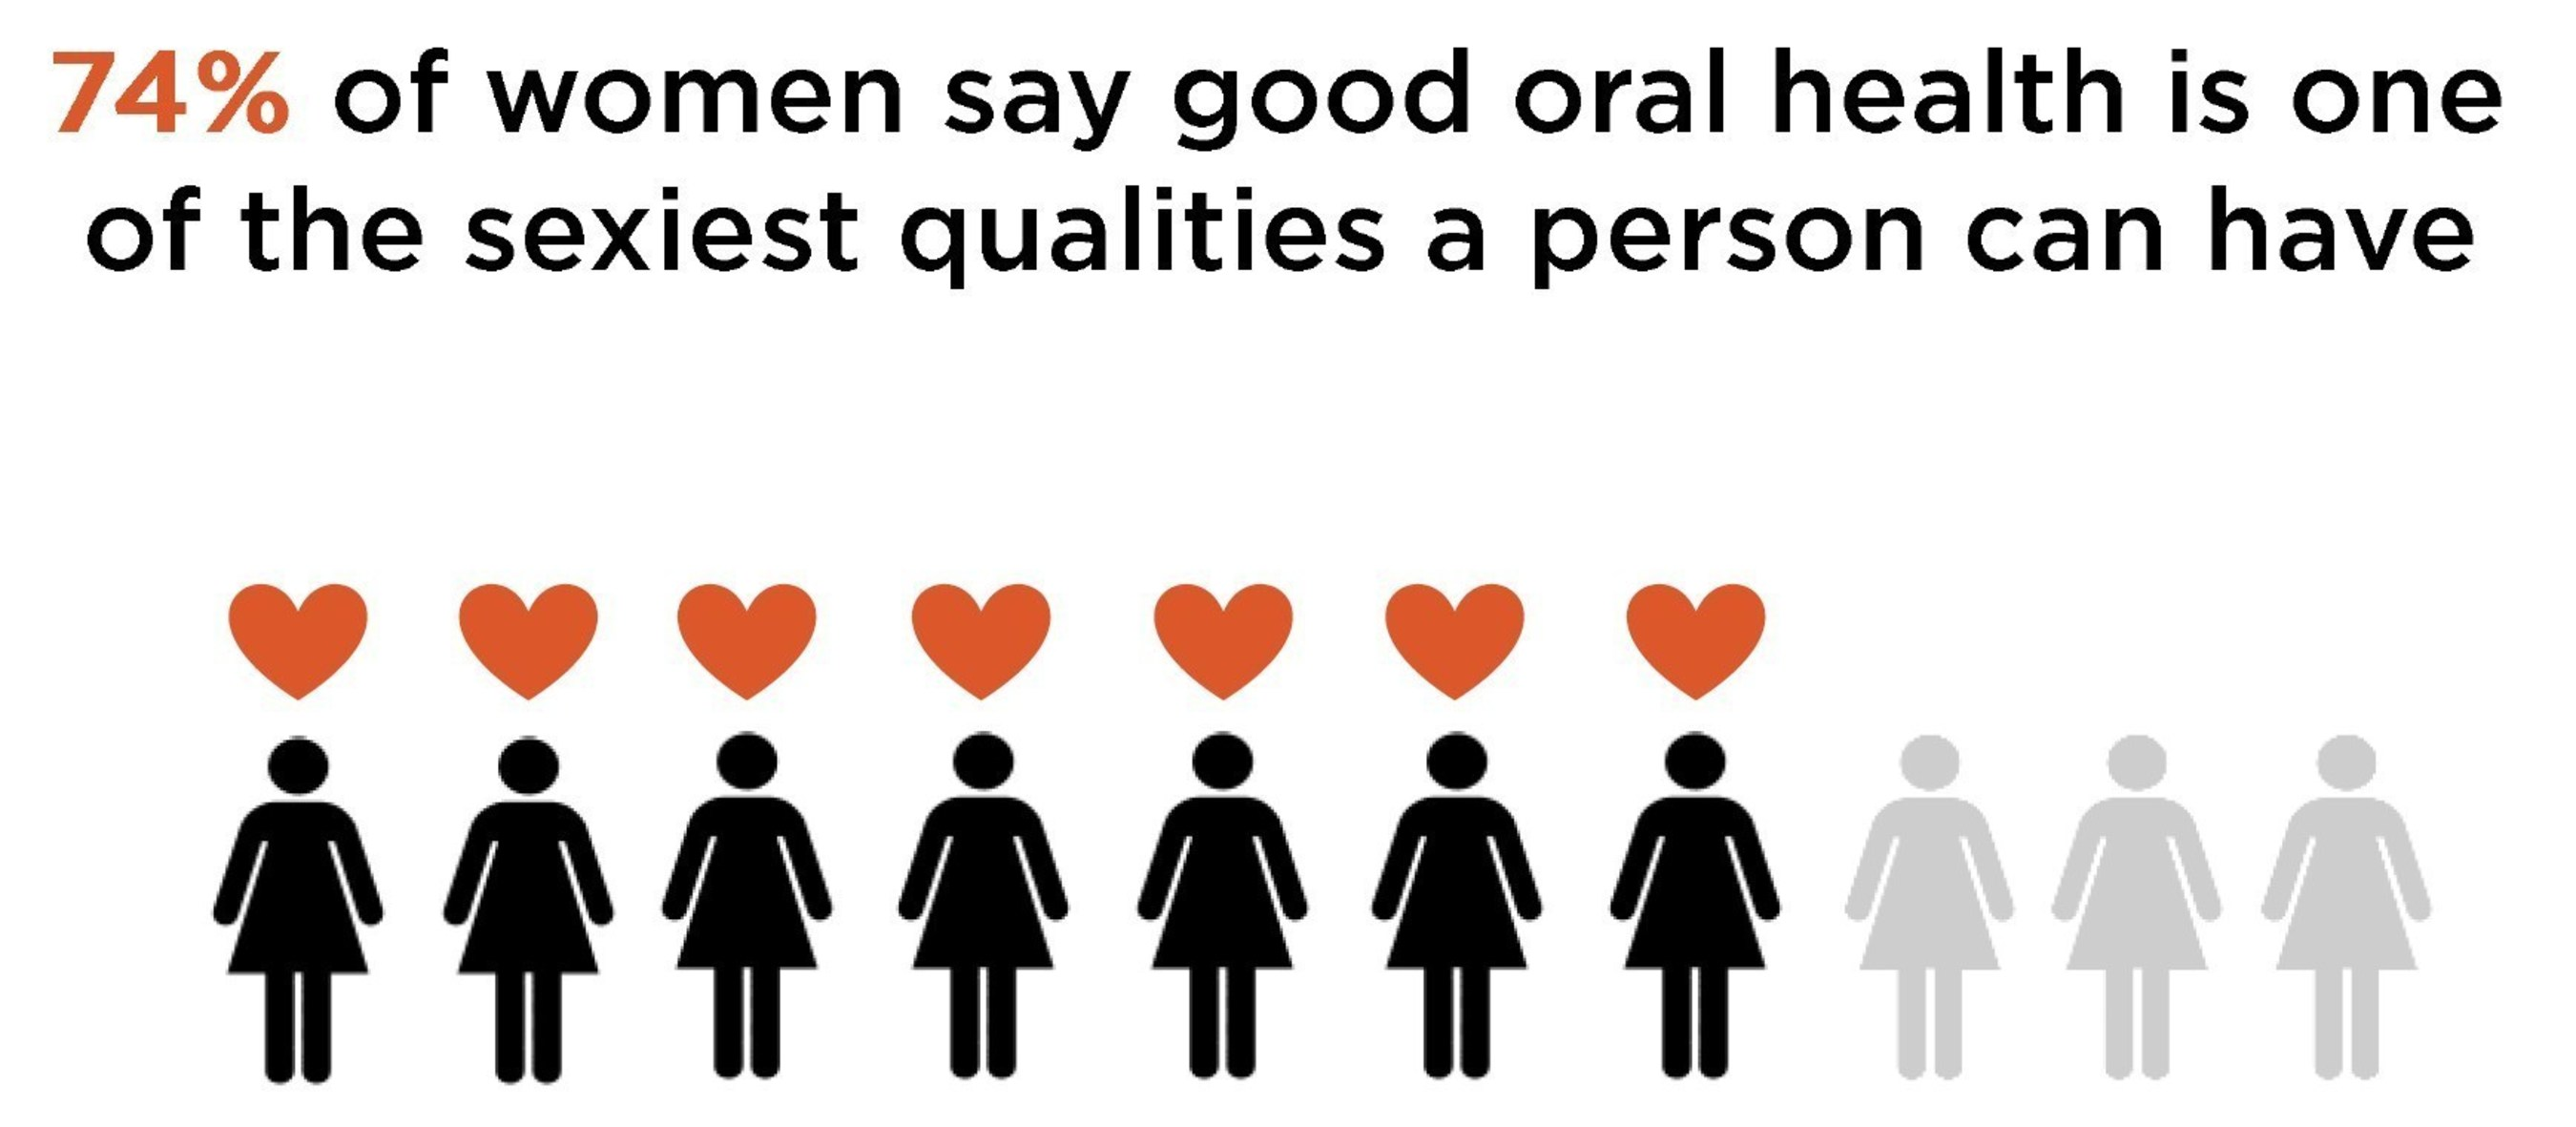 Majority of women say good oral health is sexy.